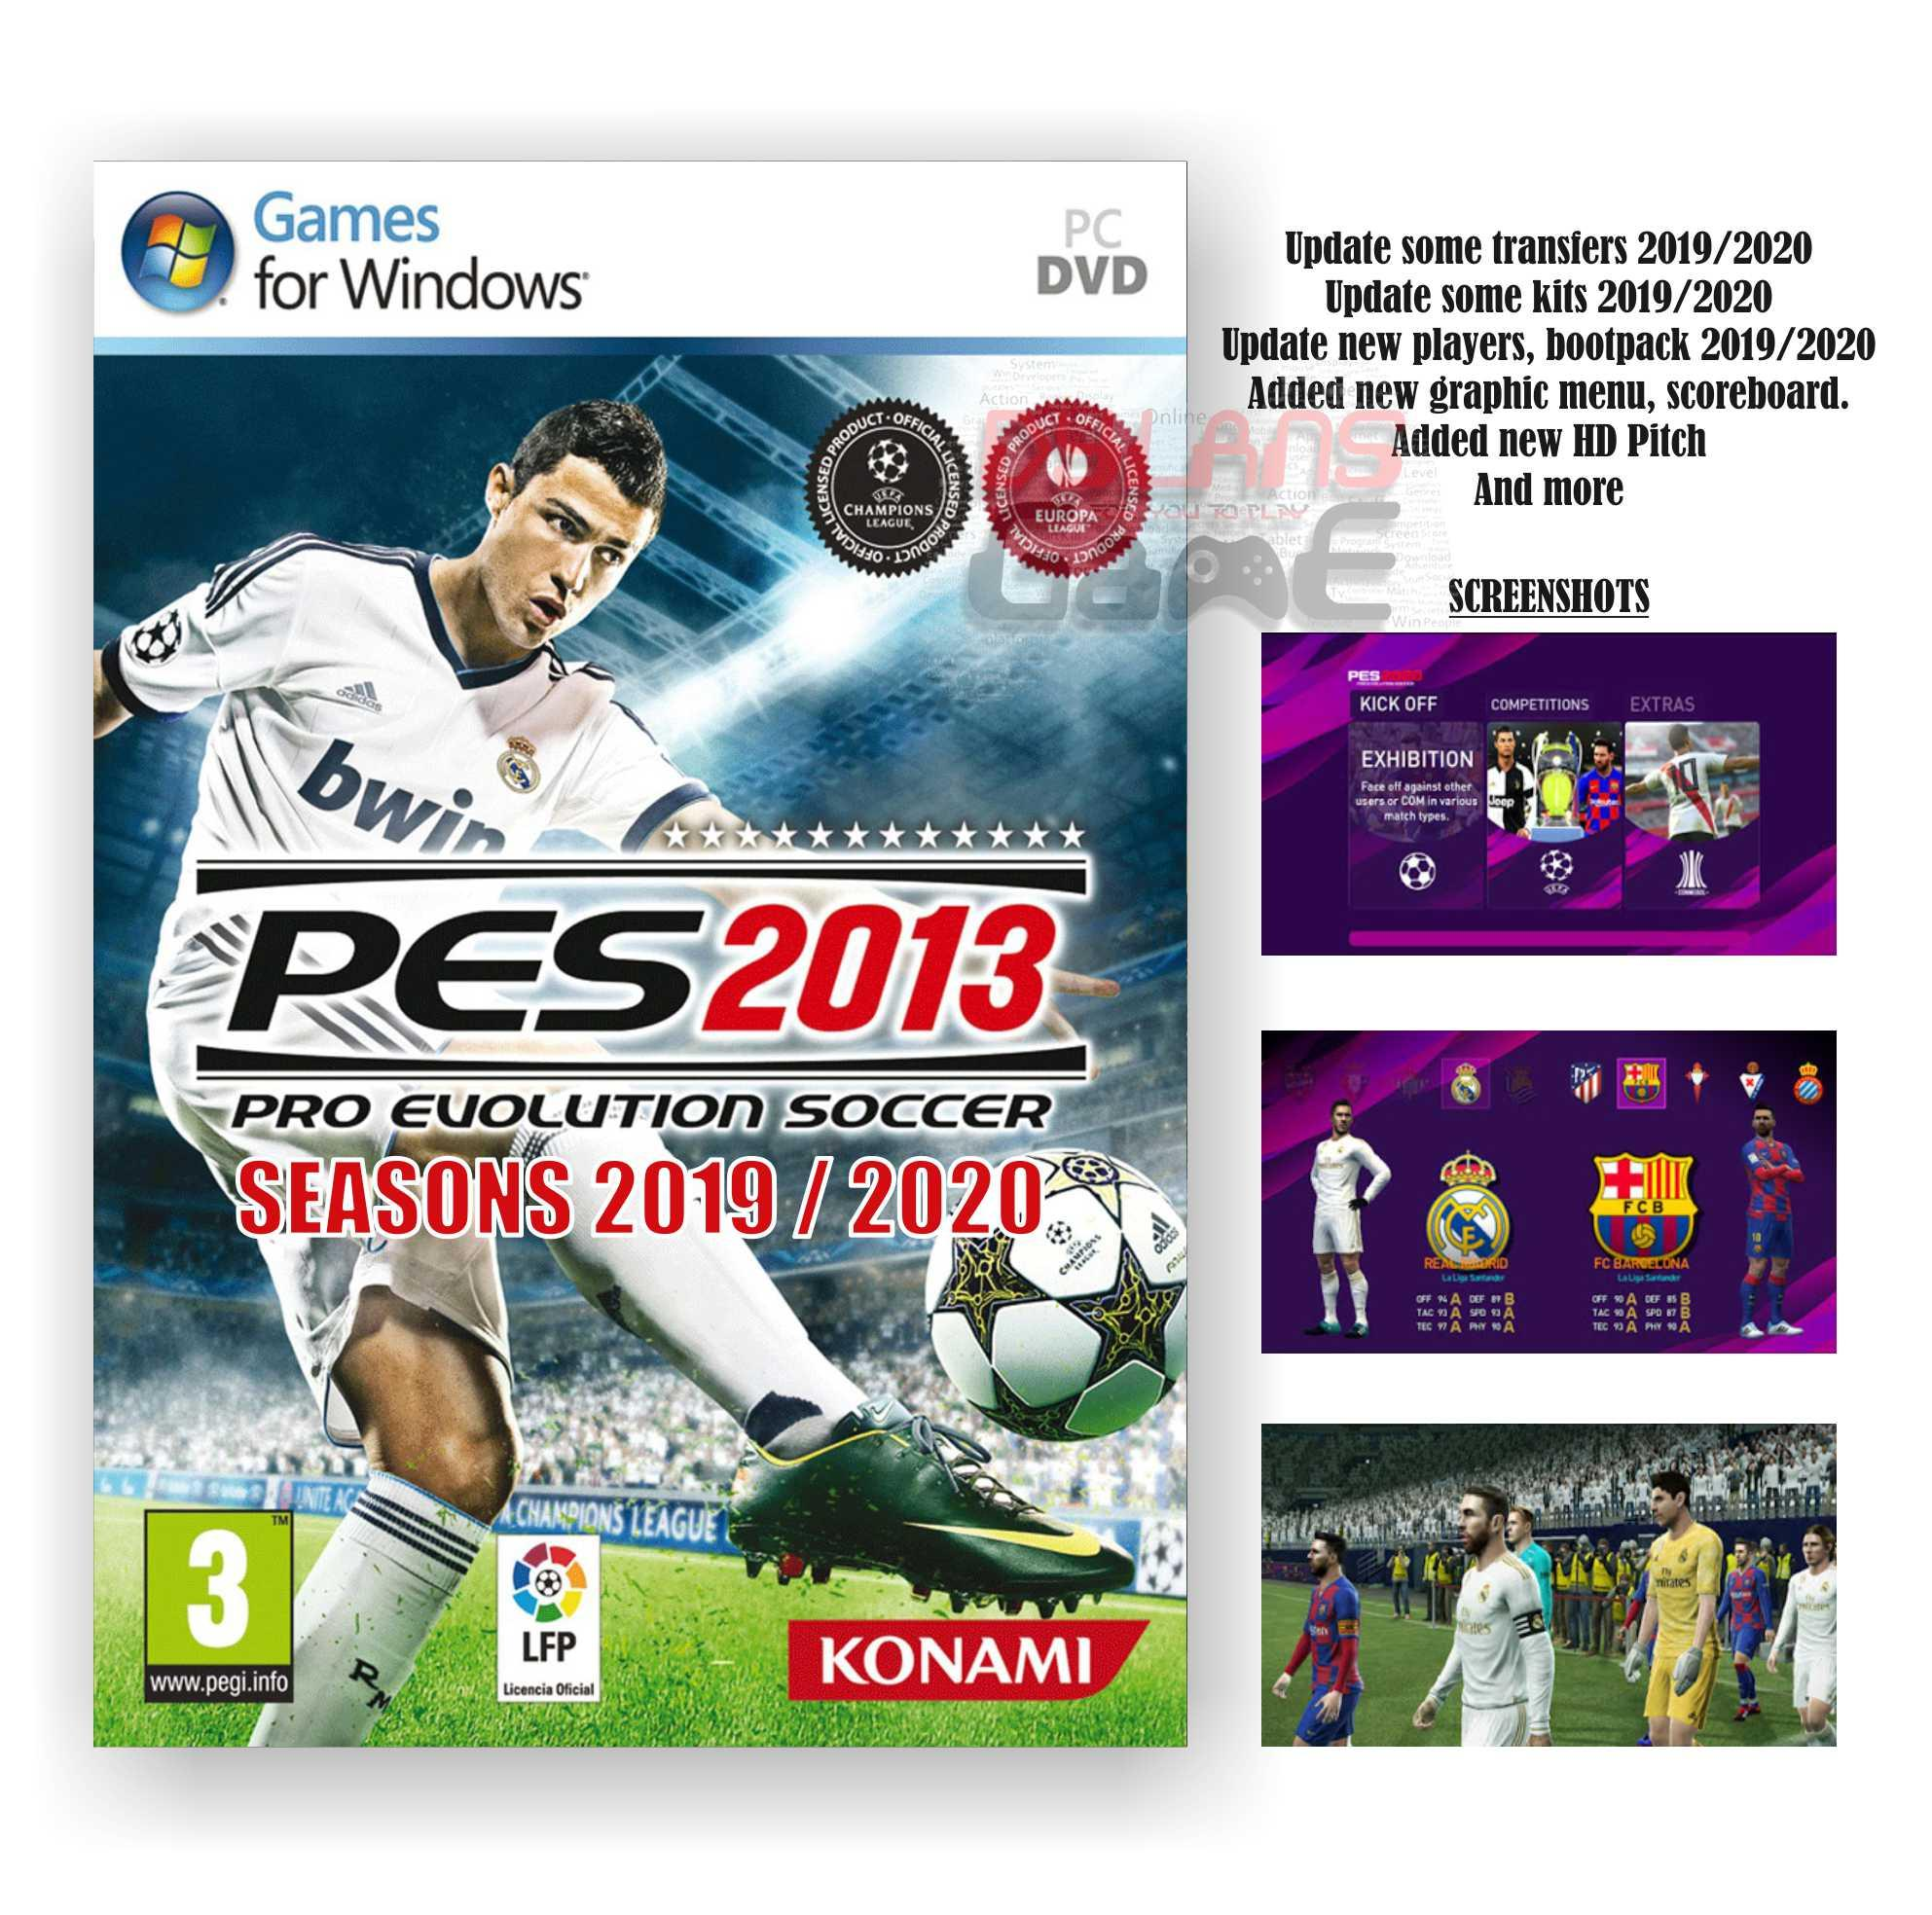 PES13 PRO EVOLUTION SOCCER 2013 + SEASON UPDATE 2019/2020 PC GAME DVD GAME PC LAPTOP